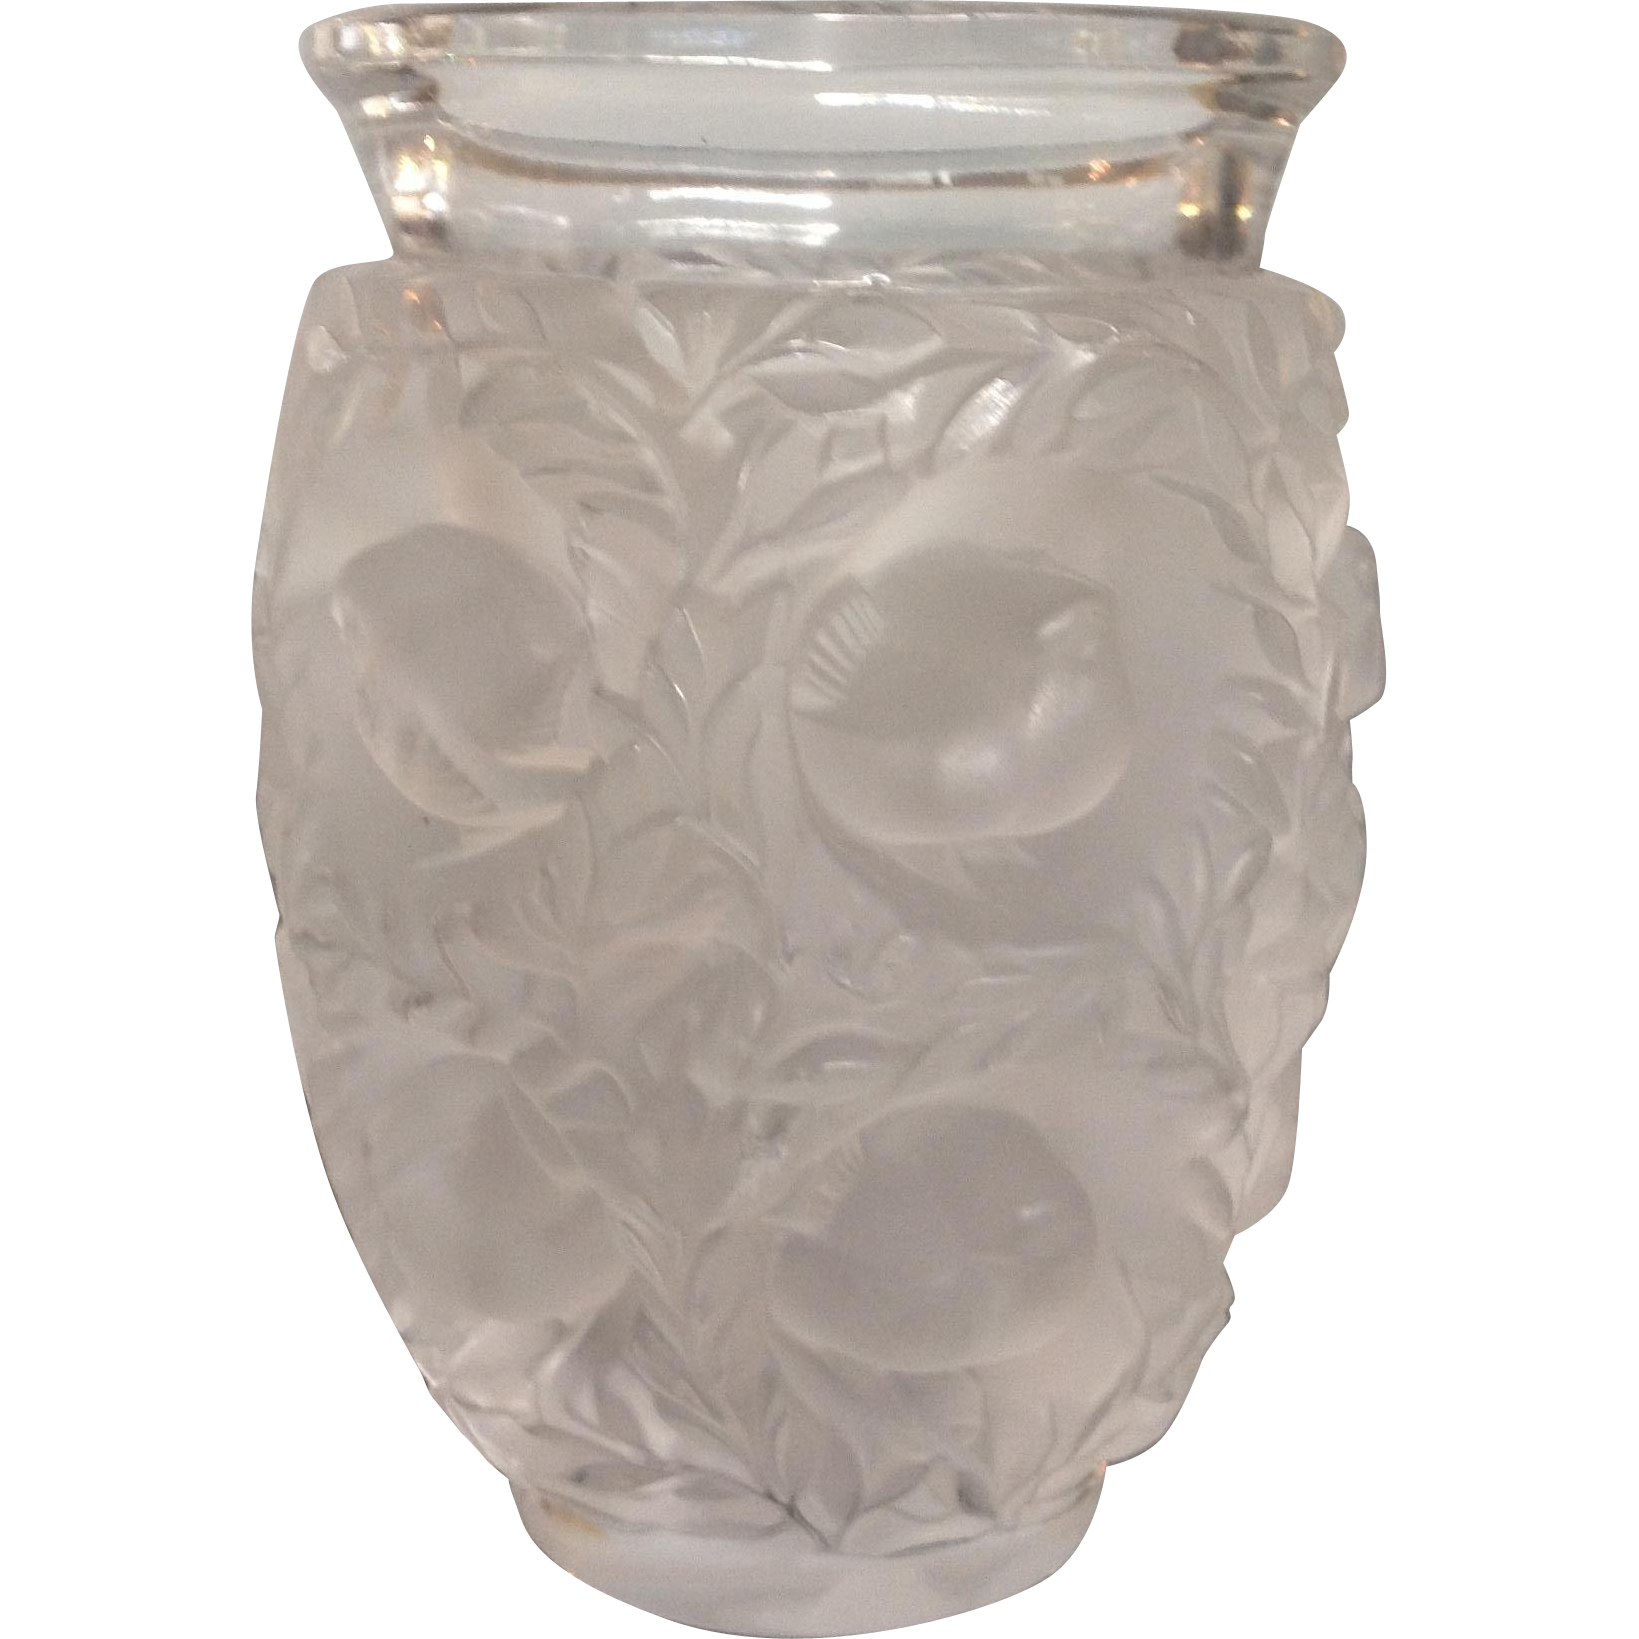 Lalique bagatelle vase birds and leaves 675 from lalique bagatelle vase birds and leaves 675 reviewsmspy